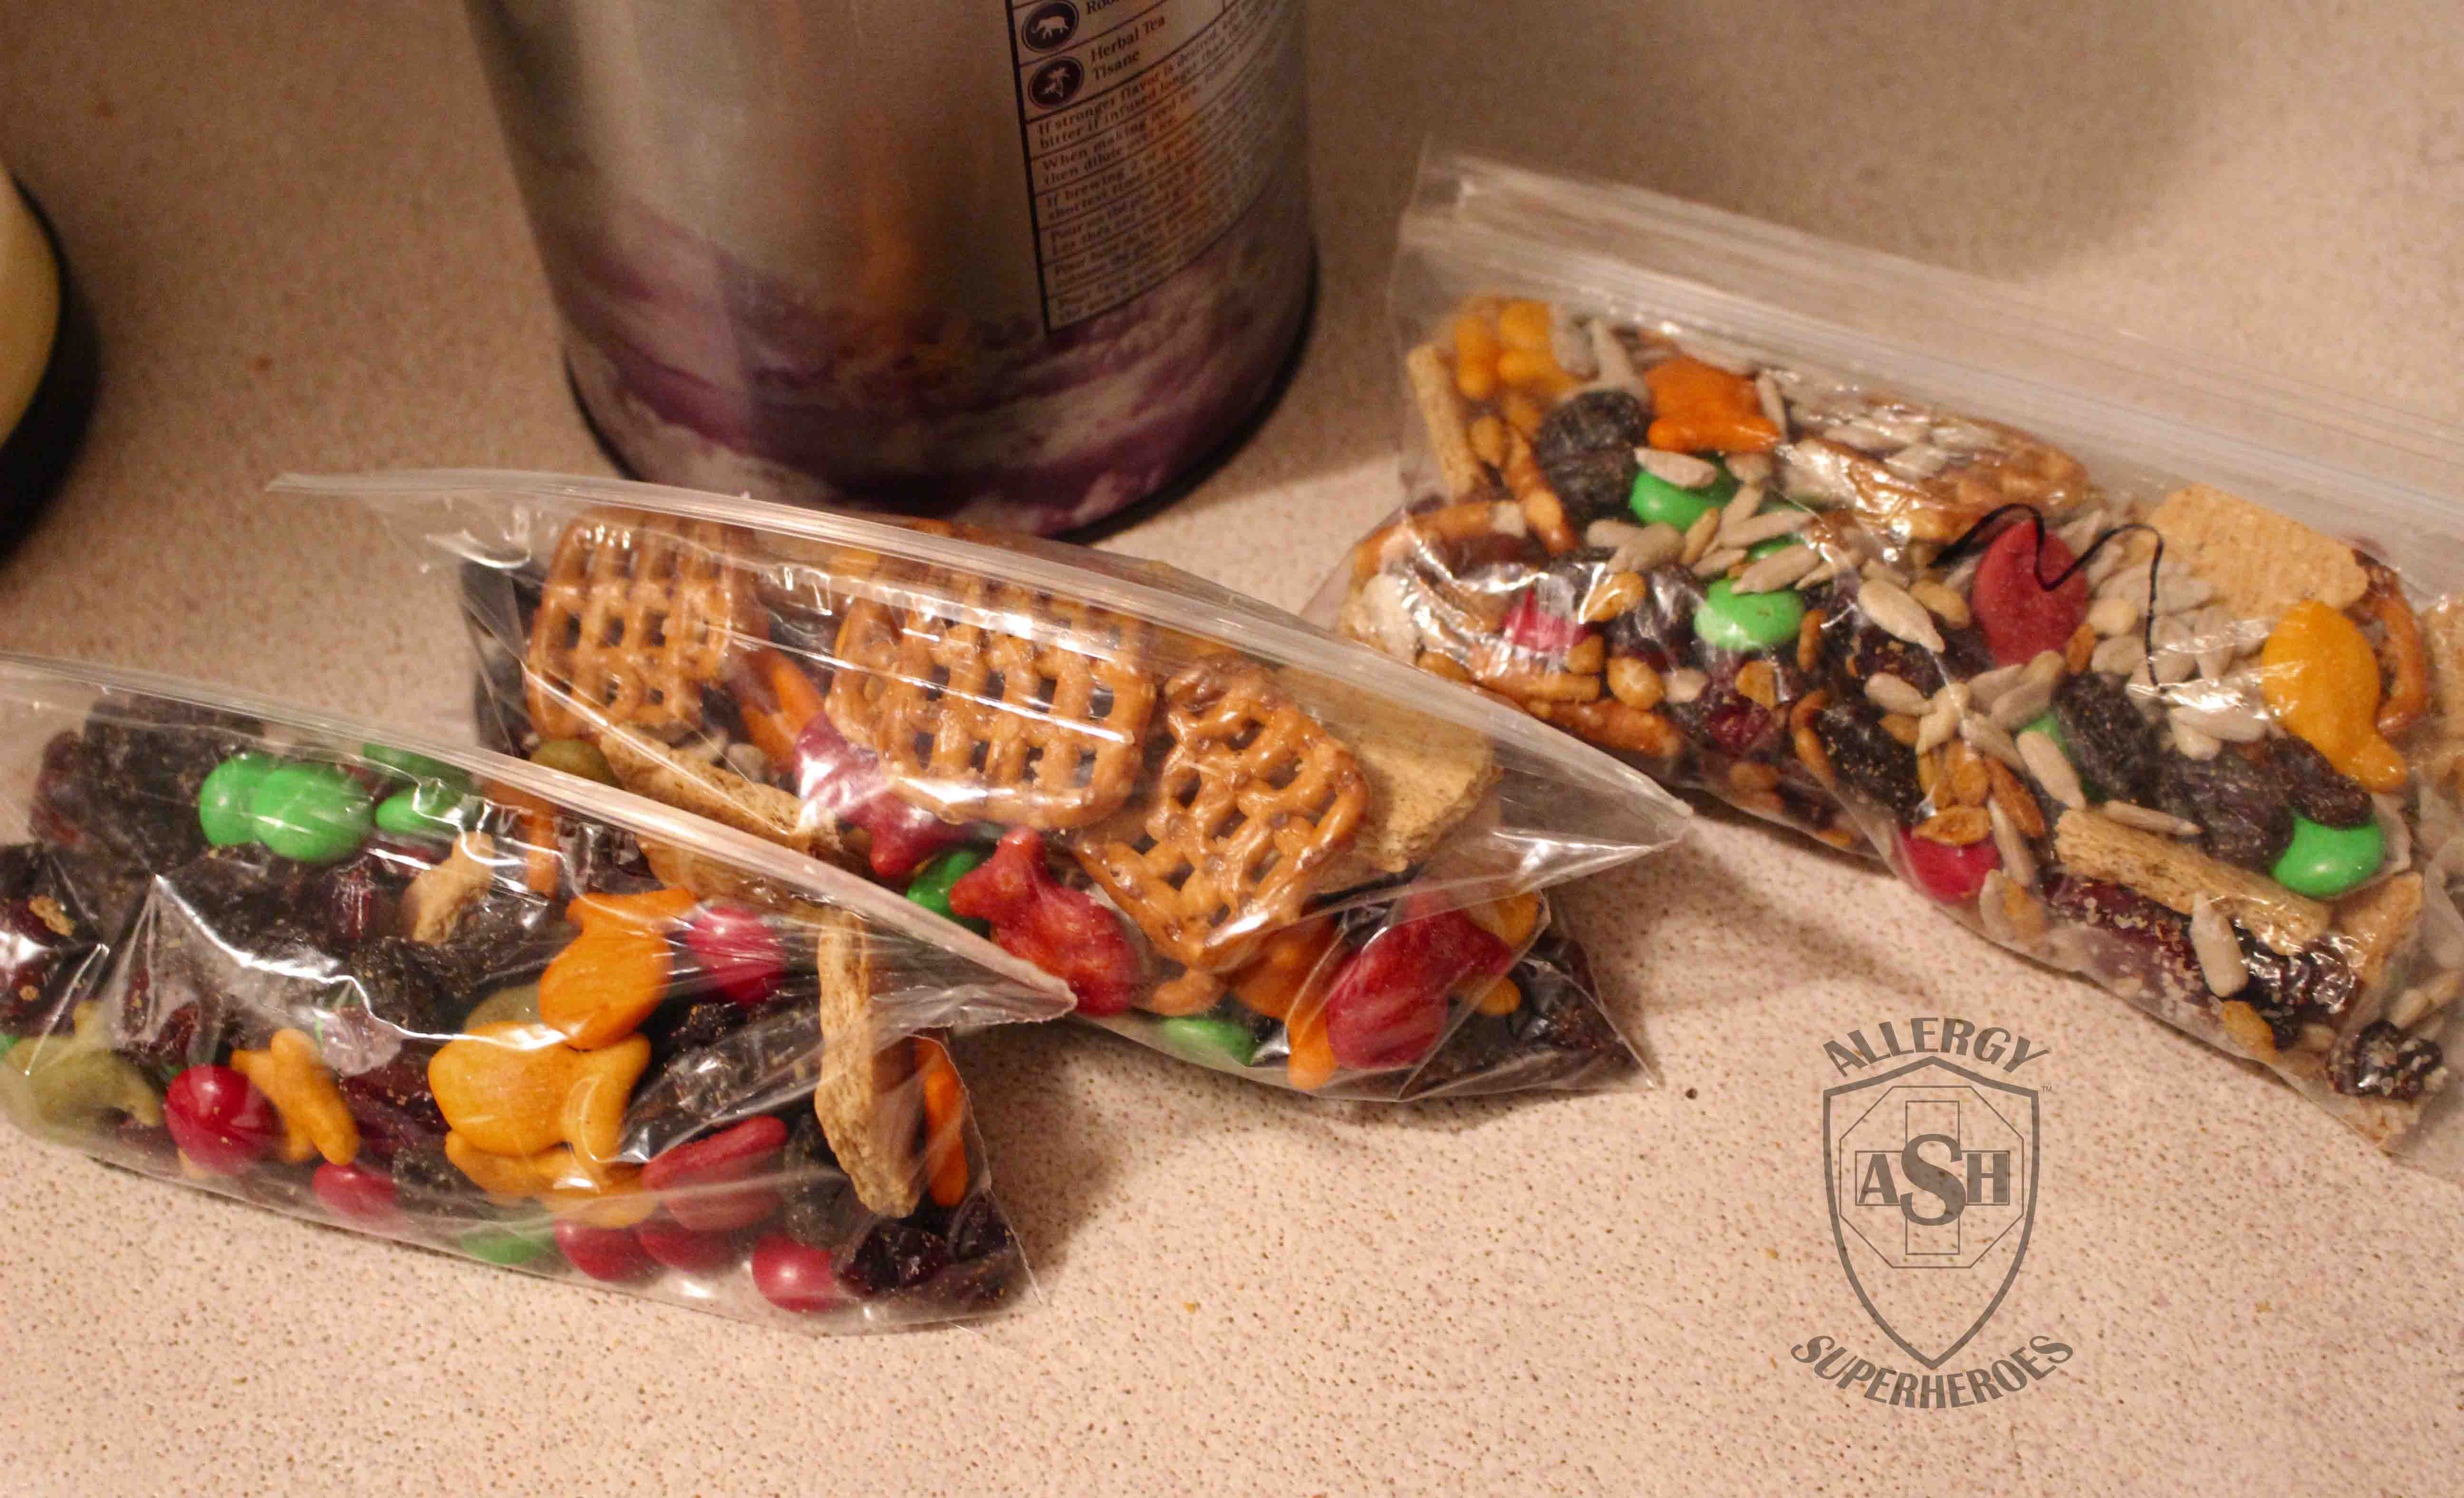 Allergy Friendly Trail Mix Food Allergy Superheroes 09